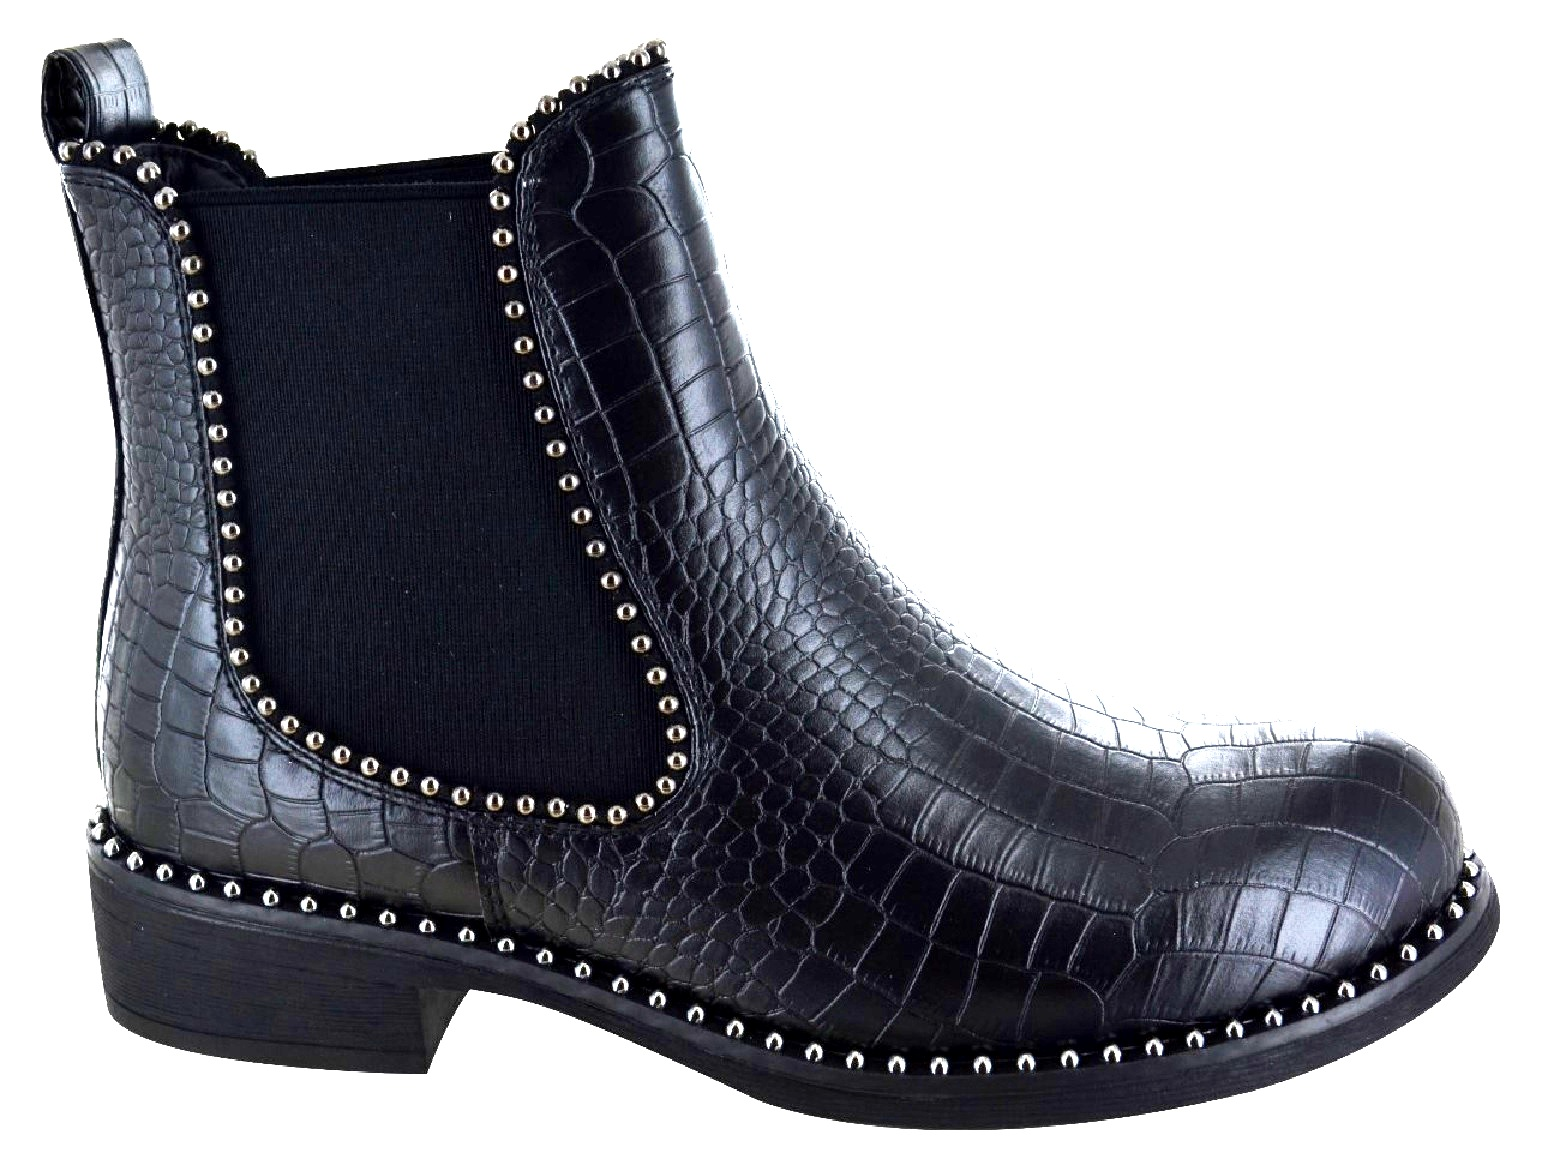 WOMENS LADIES CHELSEA DIAMANTE ANKLE BOOTS STUDS ZIP CASUAL FLAT SHOES SIZE 3-8